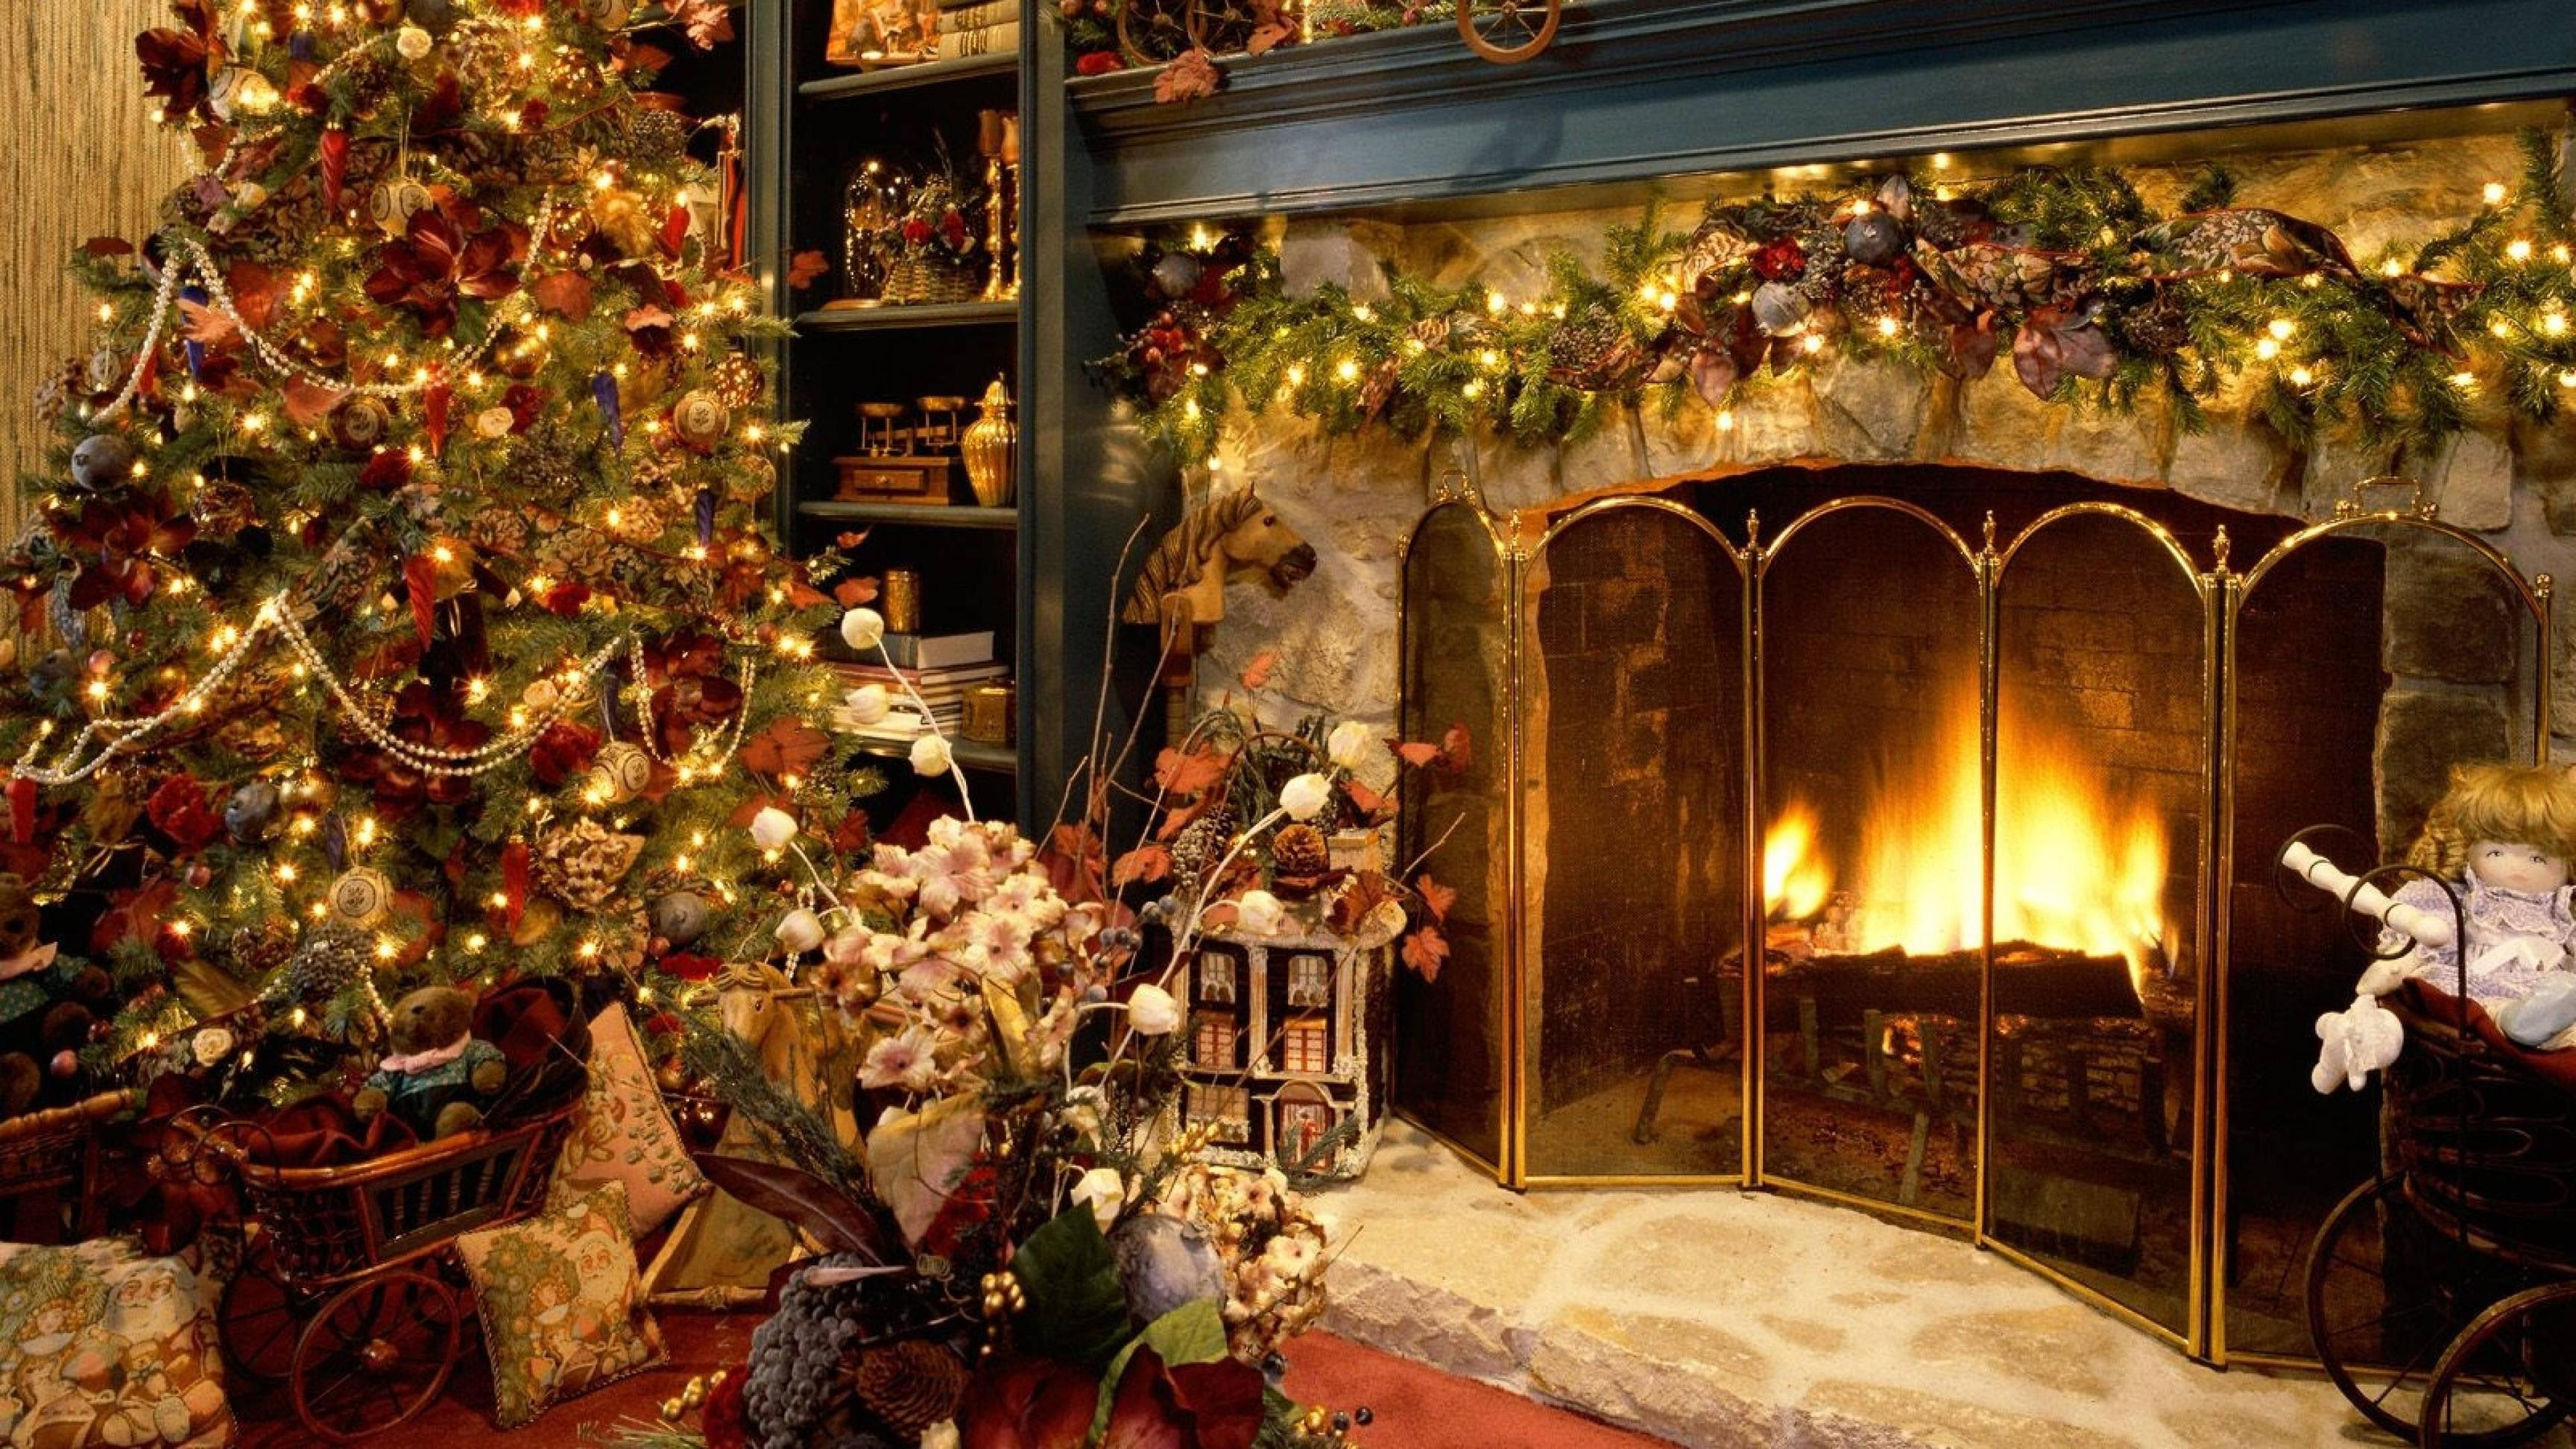 Cozy Christmas Fireplace New Christmas Fireplace Backgrounds Wallpaper Cave